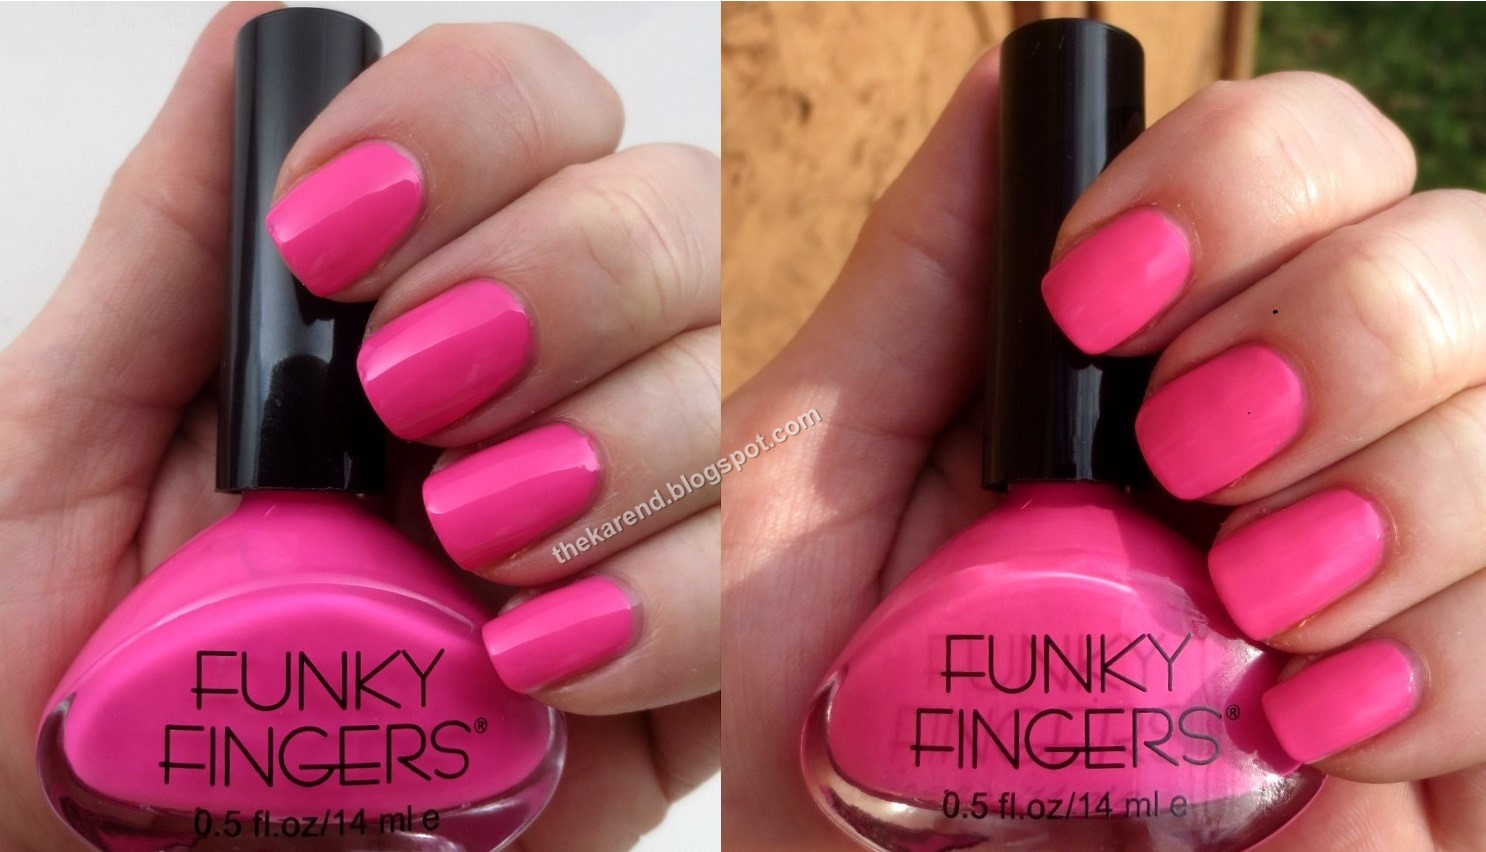 Frazzle and Aniploish: Funky Fingers Summer 2015 Solar Polishes